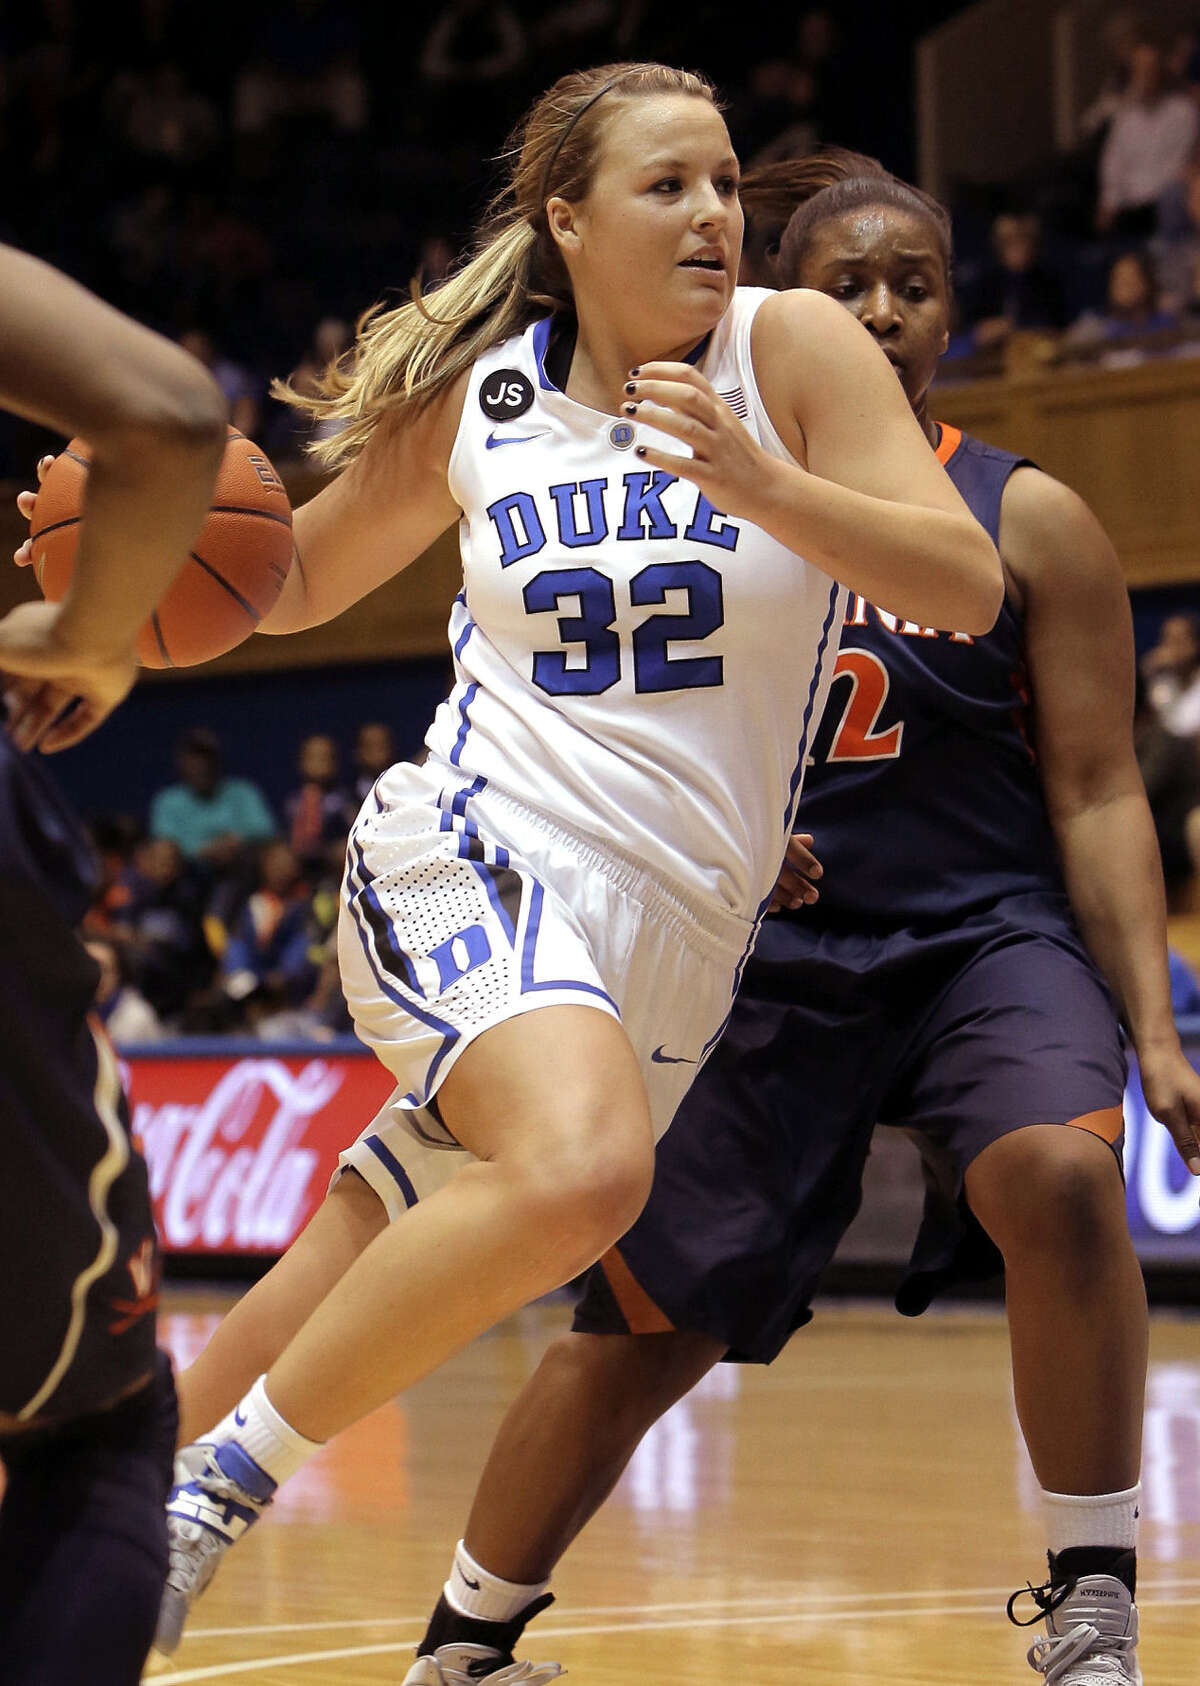 Duke's Tricia Liston, who scored a game-high 21 points, drives to the basket in the No. 3 Blue Devils' 90-55 win.